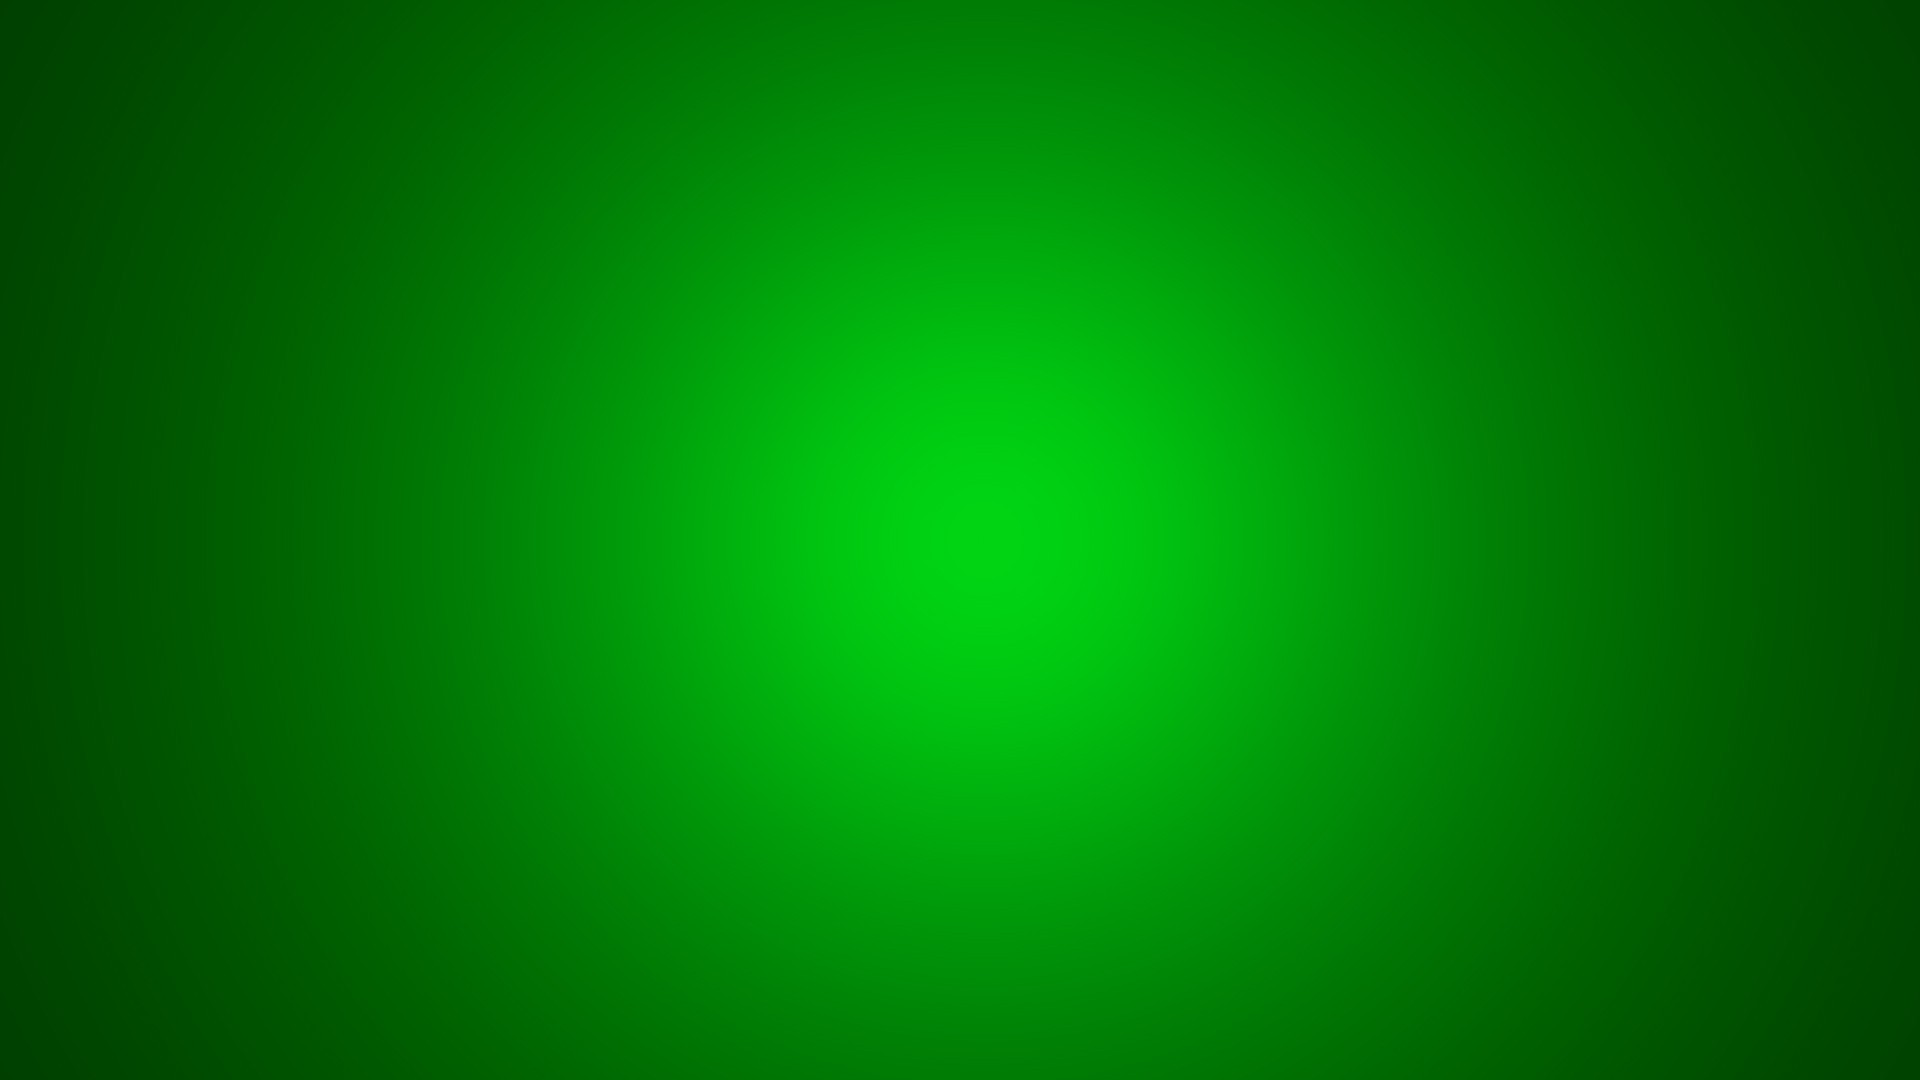 Green Background 03 - [1920x1080]